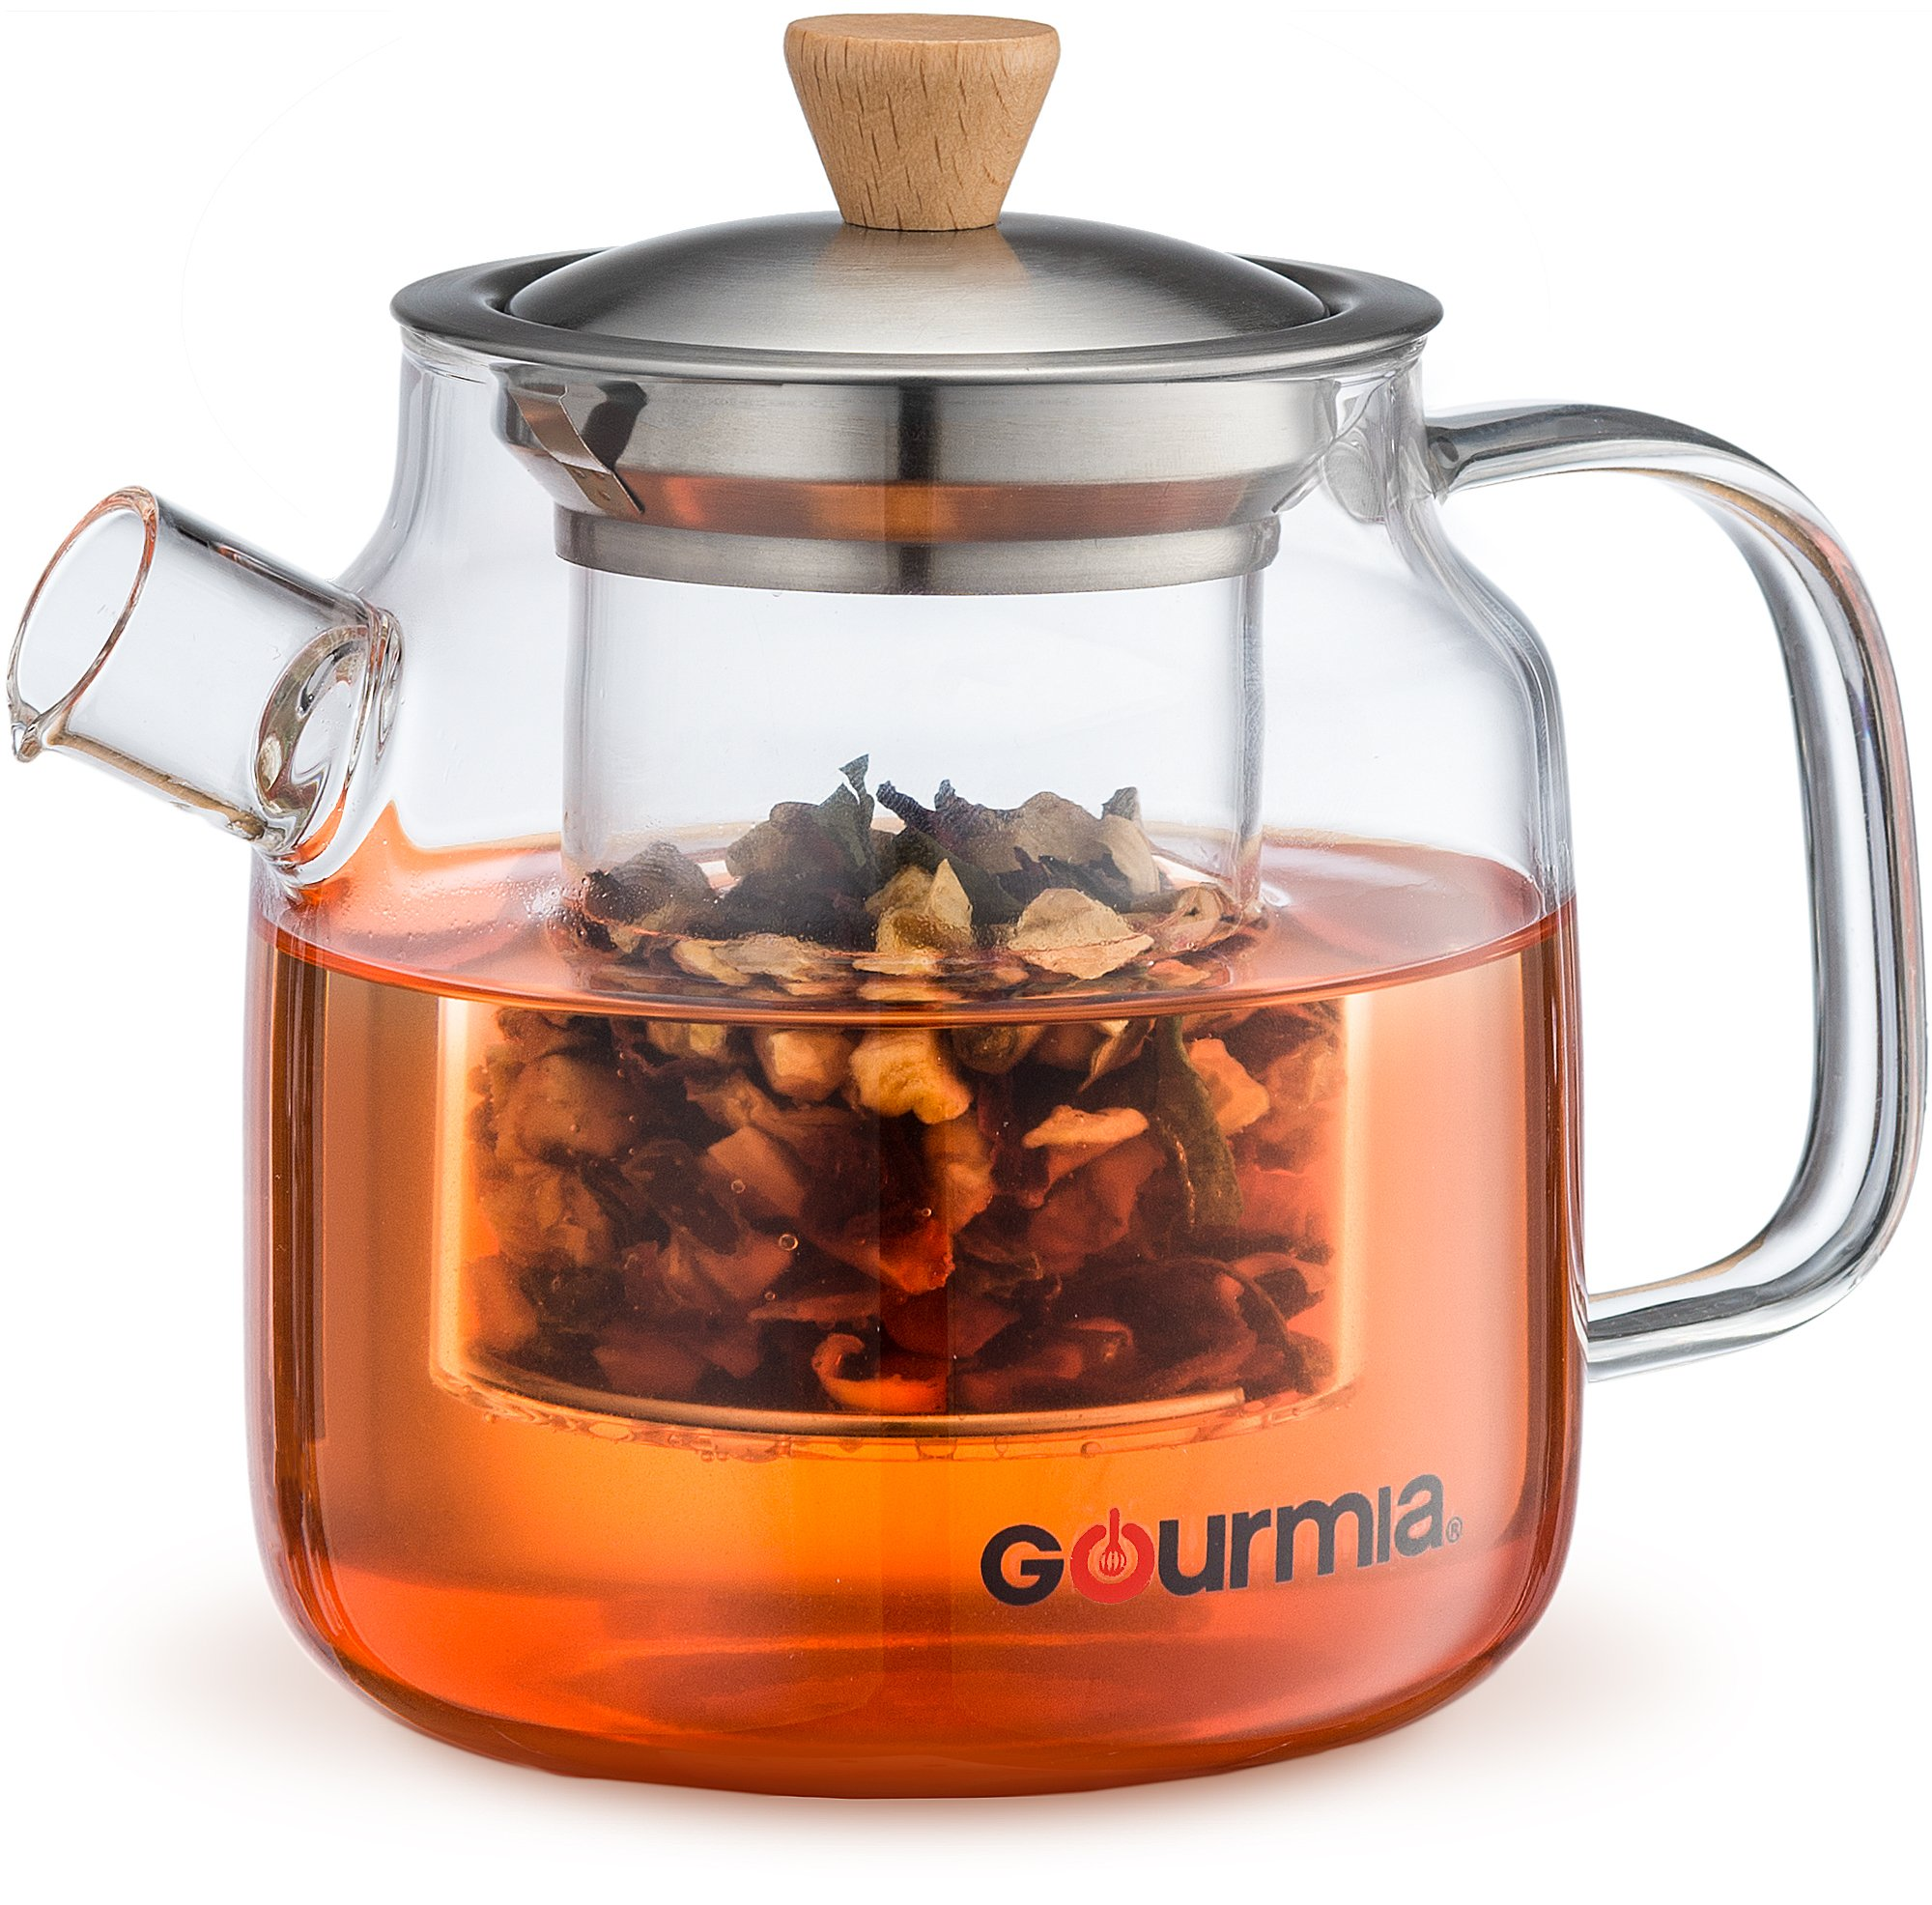 Gourmia GTP9810 Glass Tea Pot & Infuser With Handle, Lid & Loose Tea Filter, Removable Glass Infuser, 680ml Capacity